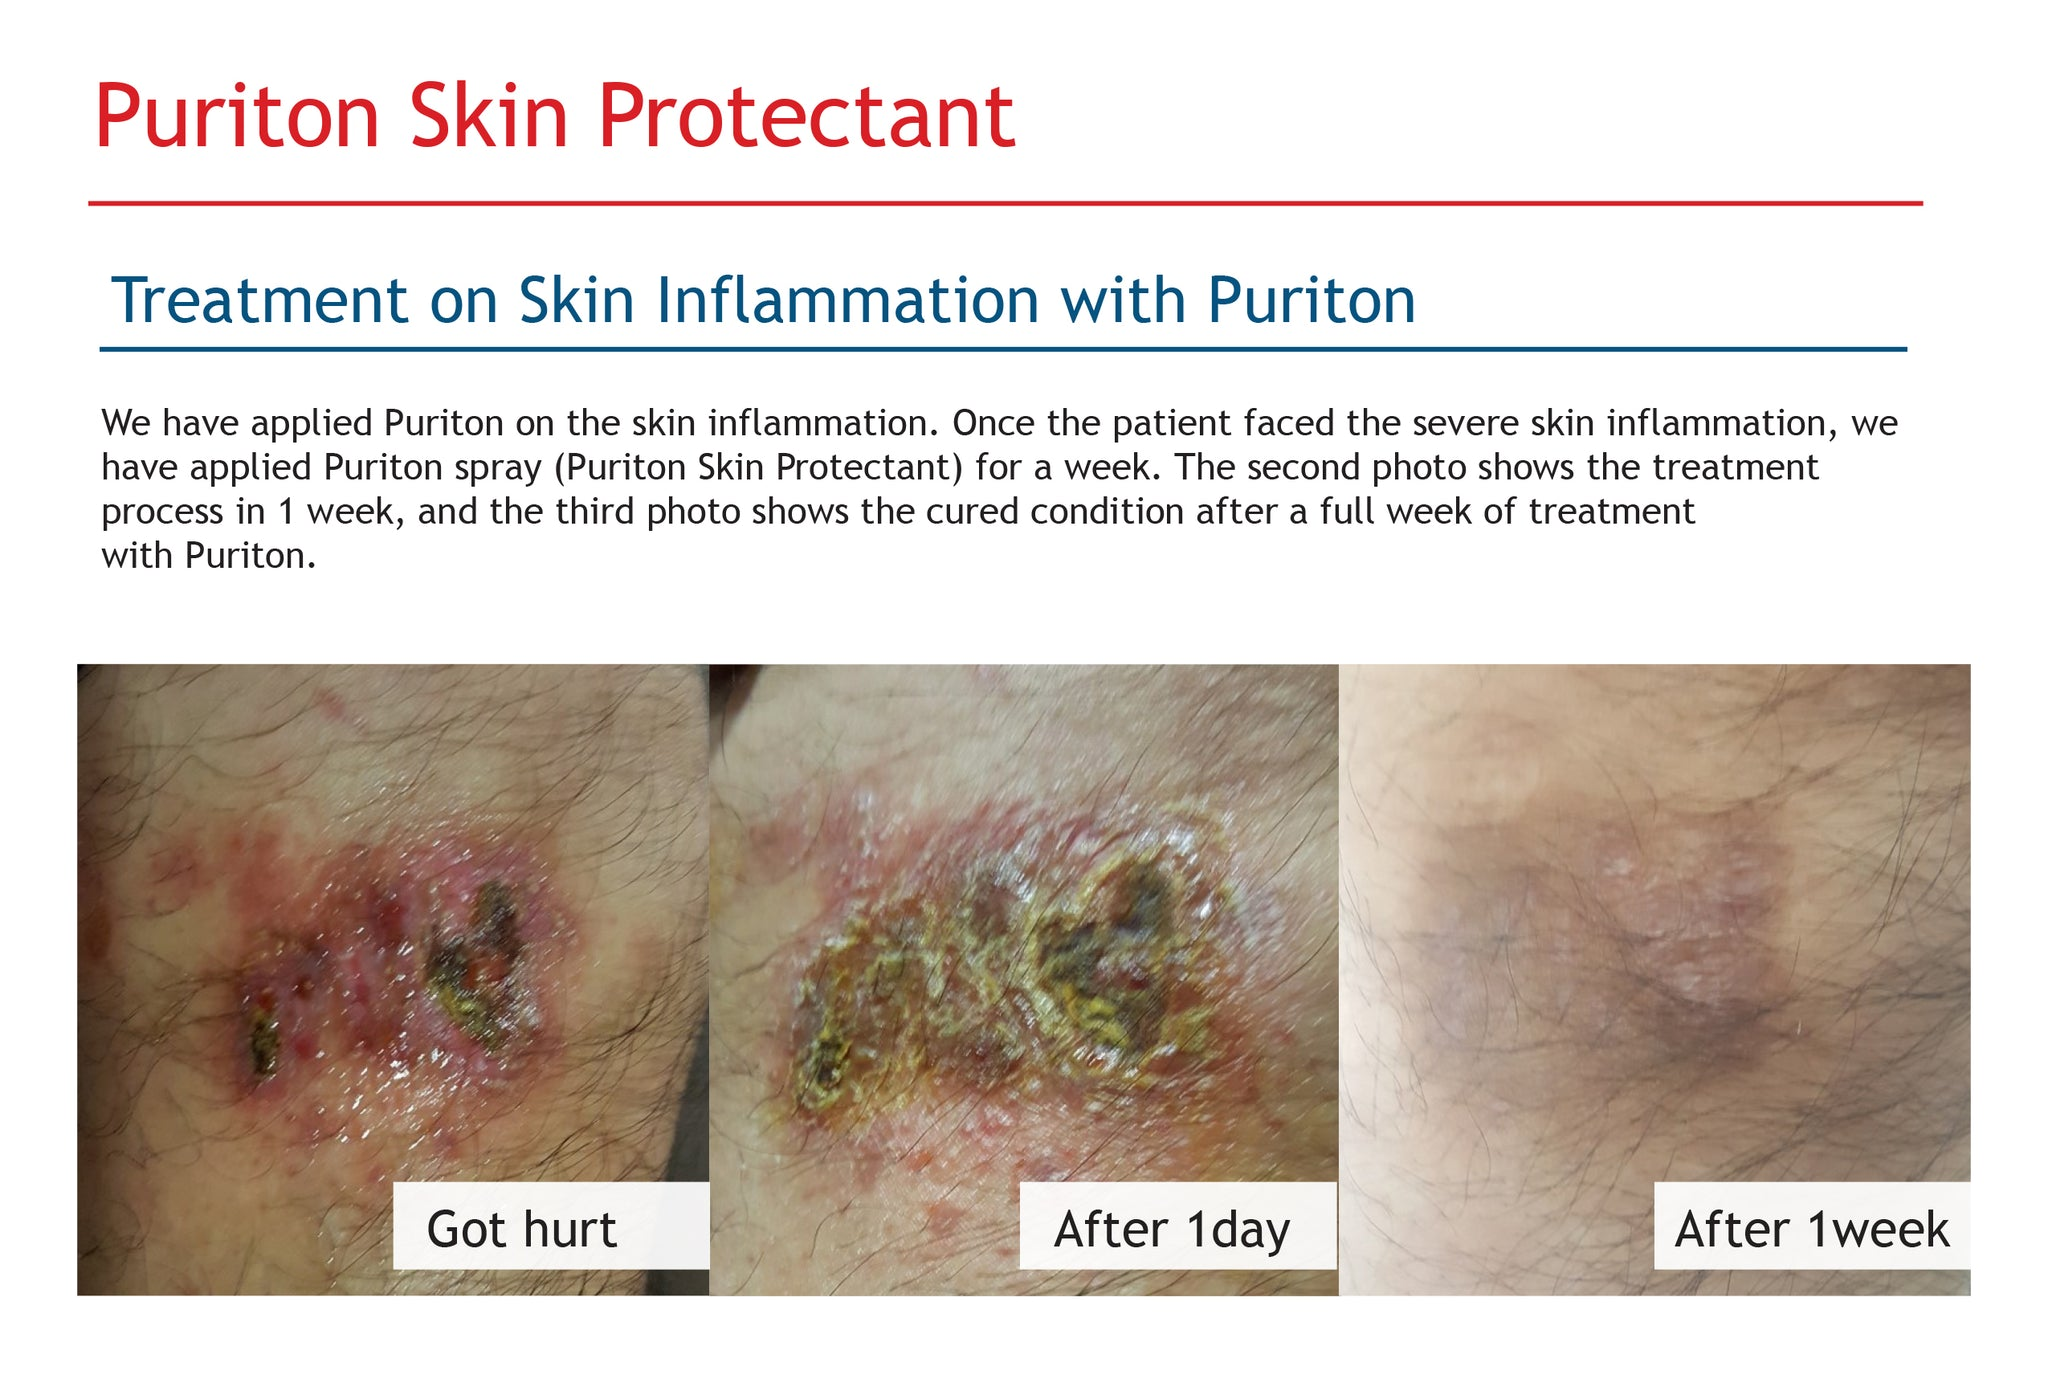 Puriton skin protectant treatment on skin inflammation